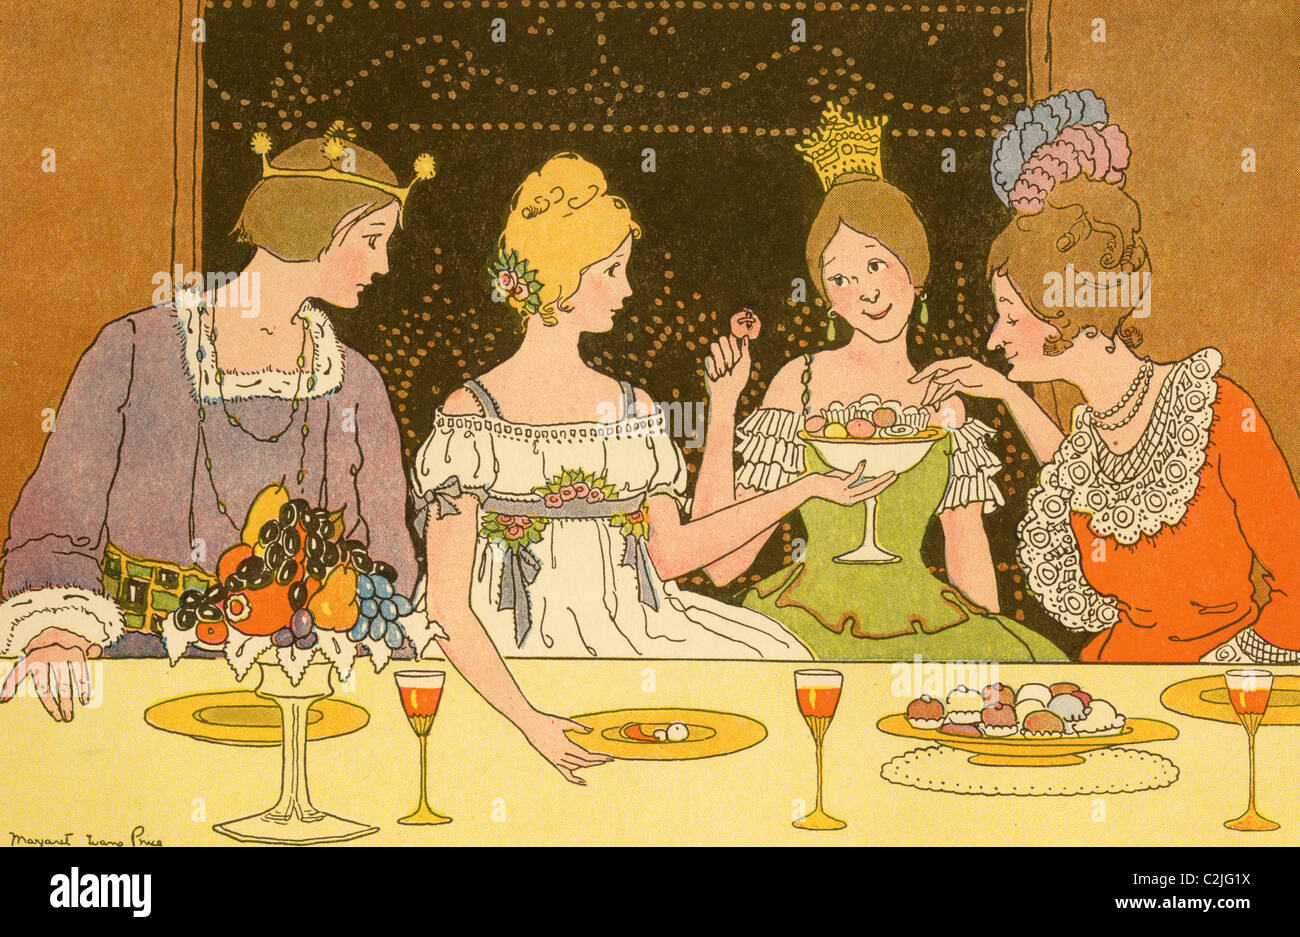 Prince & Young Ladies dine on Confectionaries - Stock Image